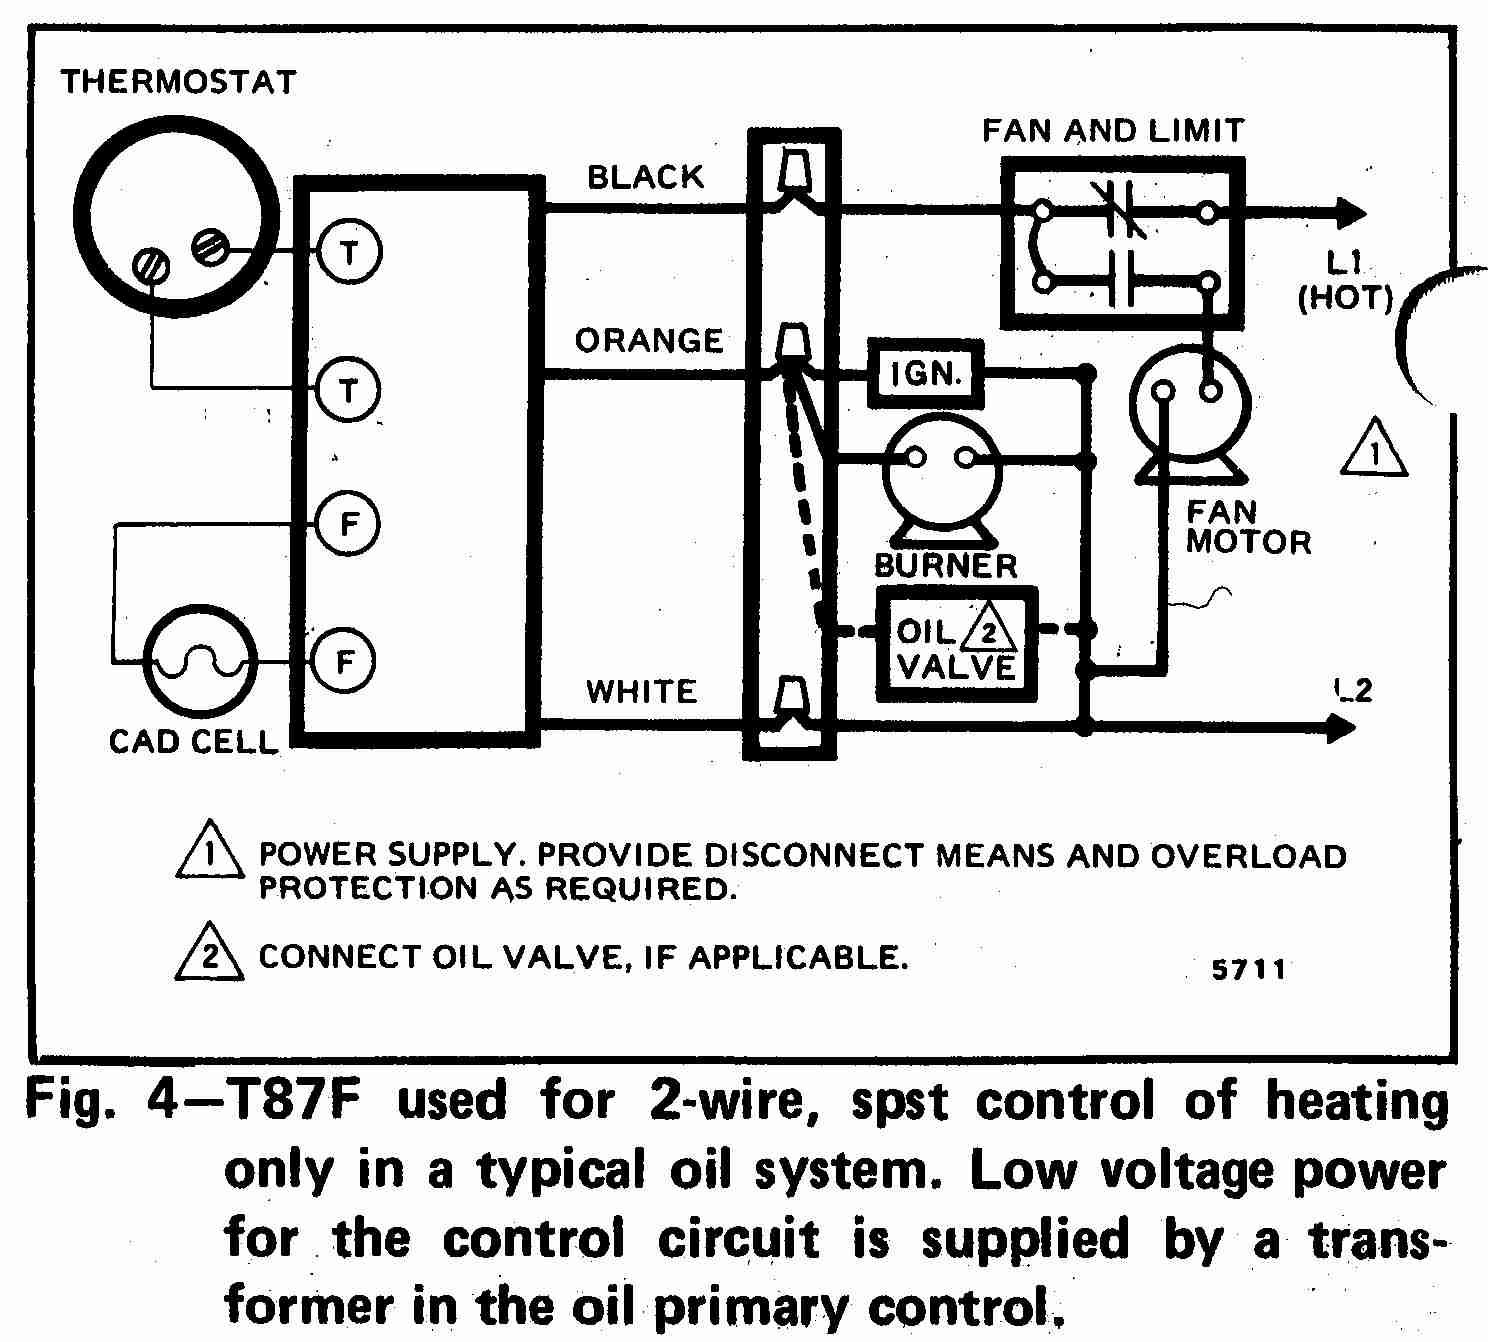 room thermostat wiring diagrams for hvac systems honeywell t87f thermostat wiring diagram for 2 wire spst control of heating only in room